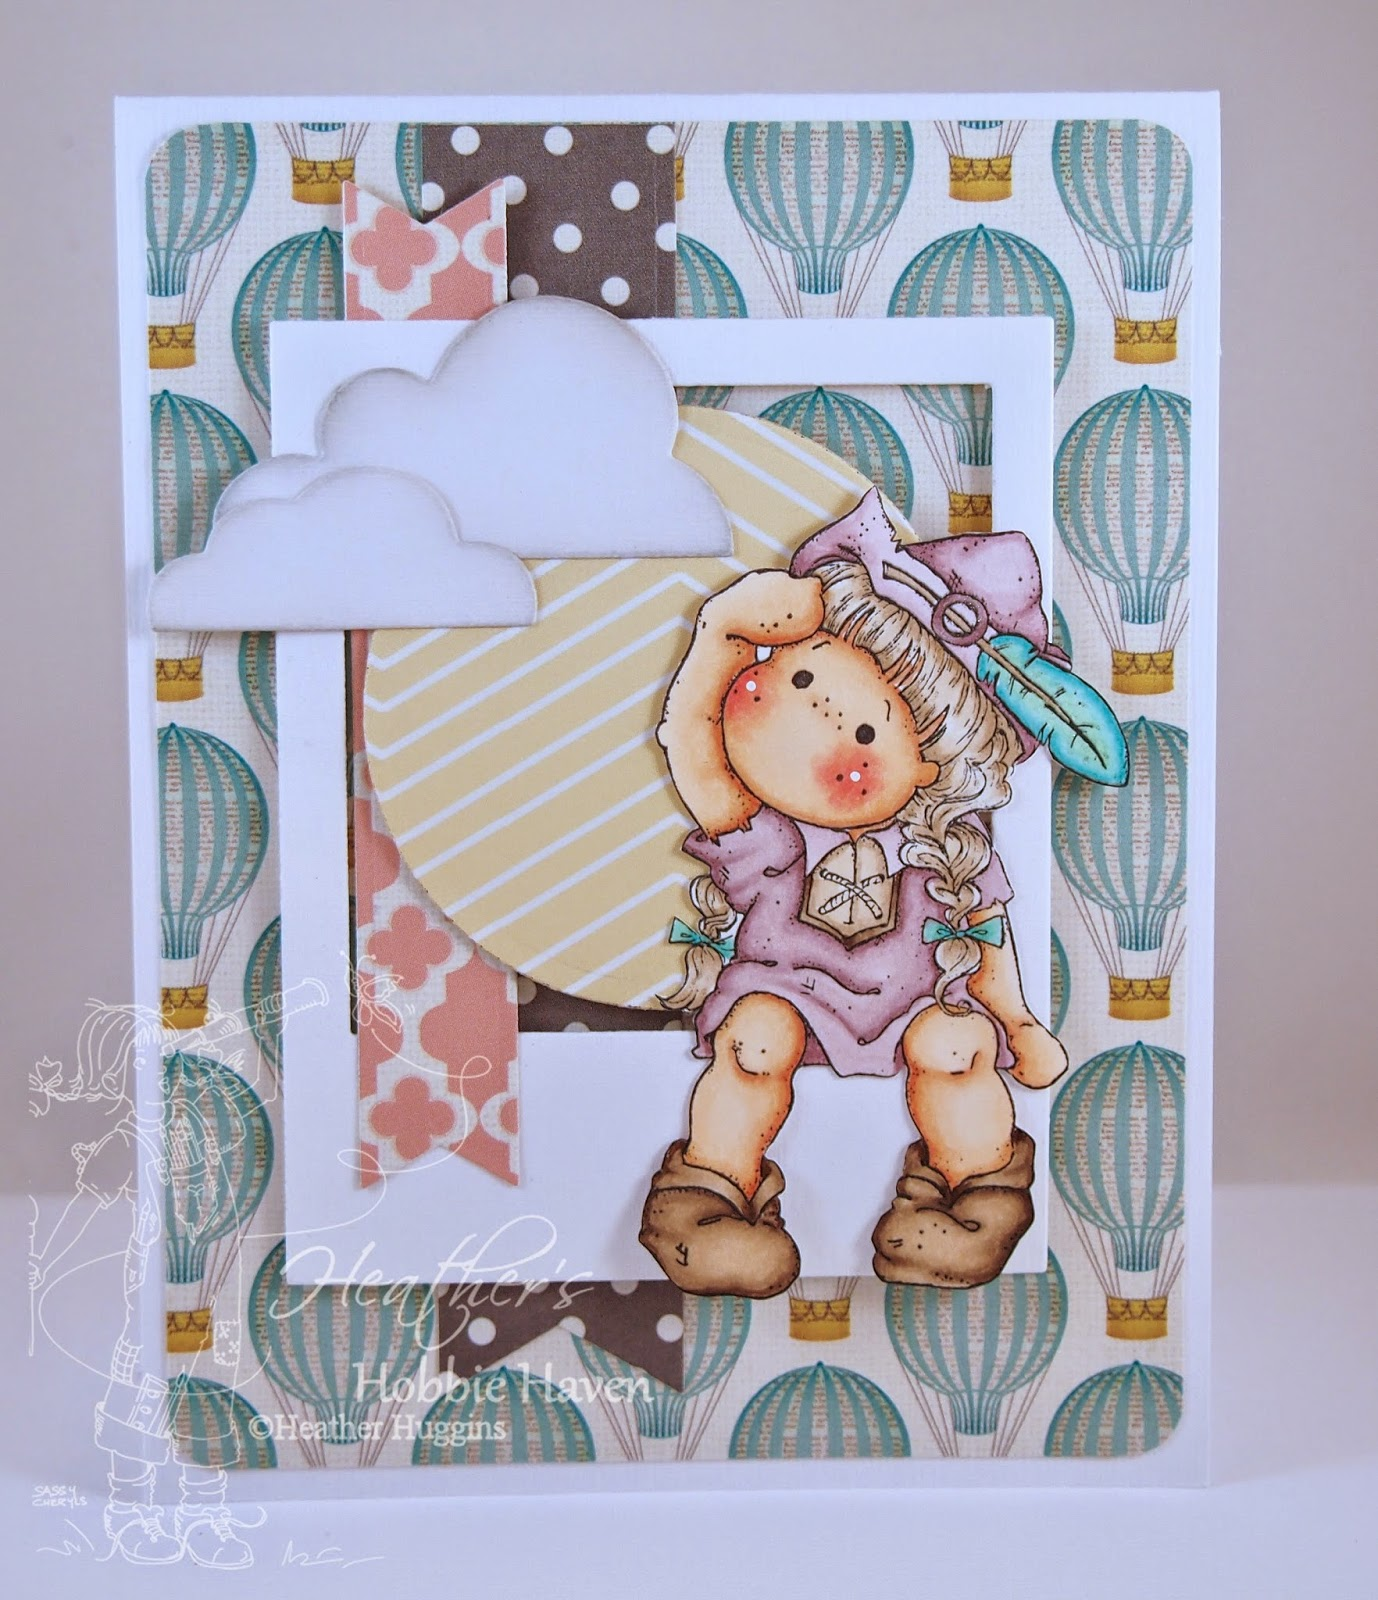 Heather's Hobbie Haven - Beanstalk Tilda Card Kit